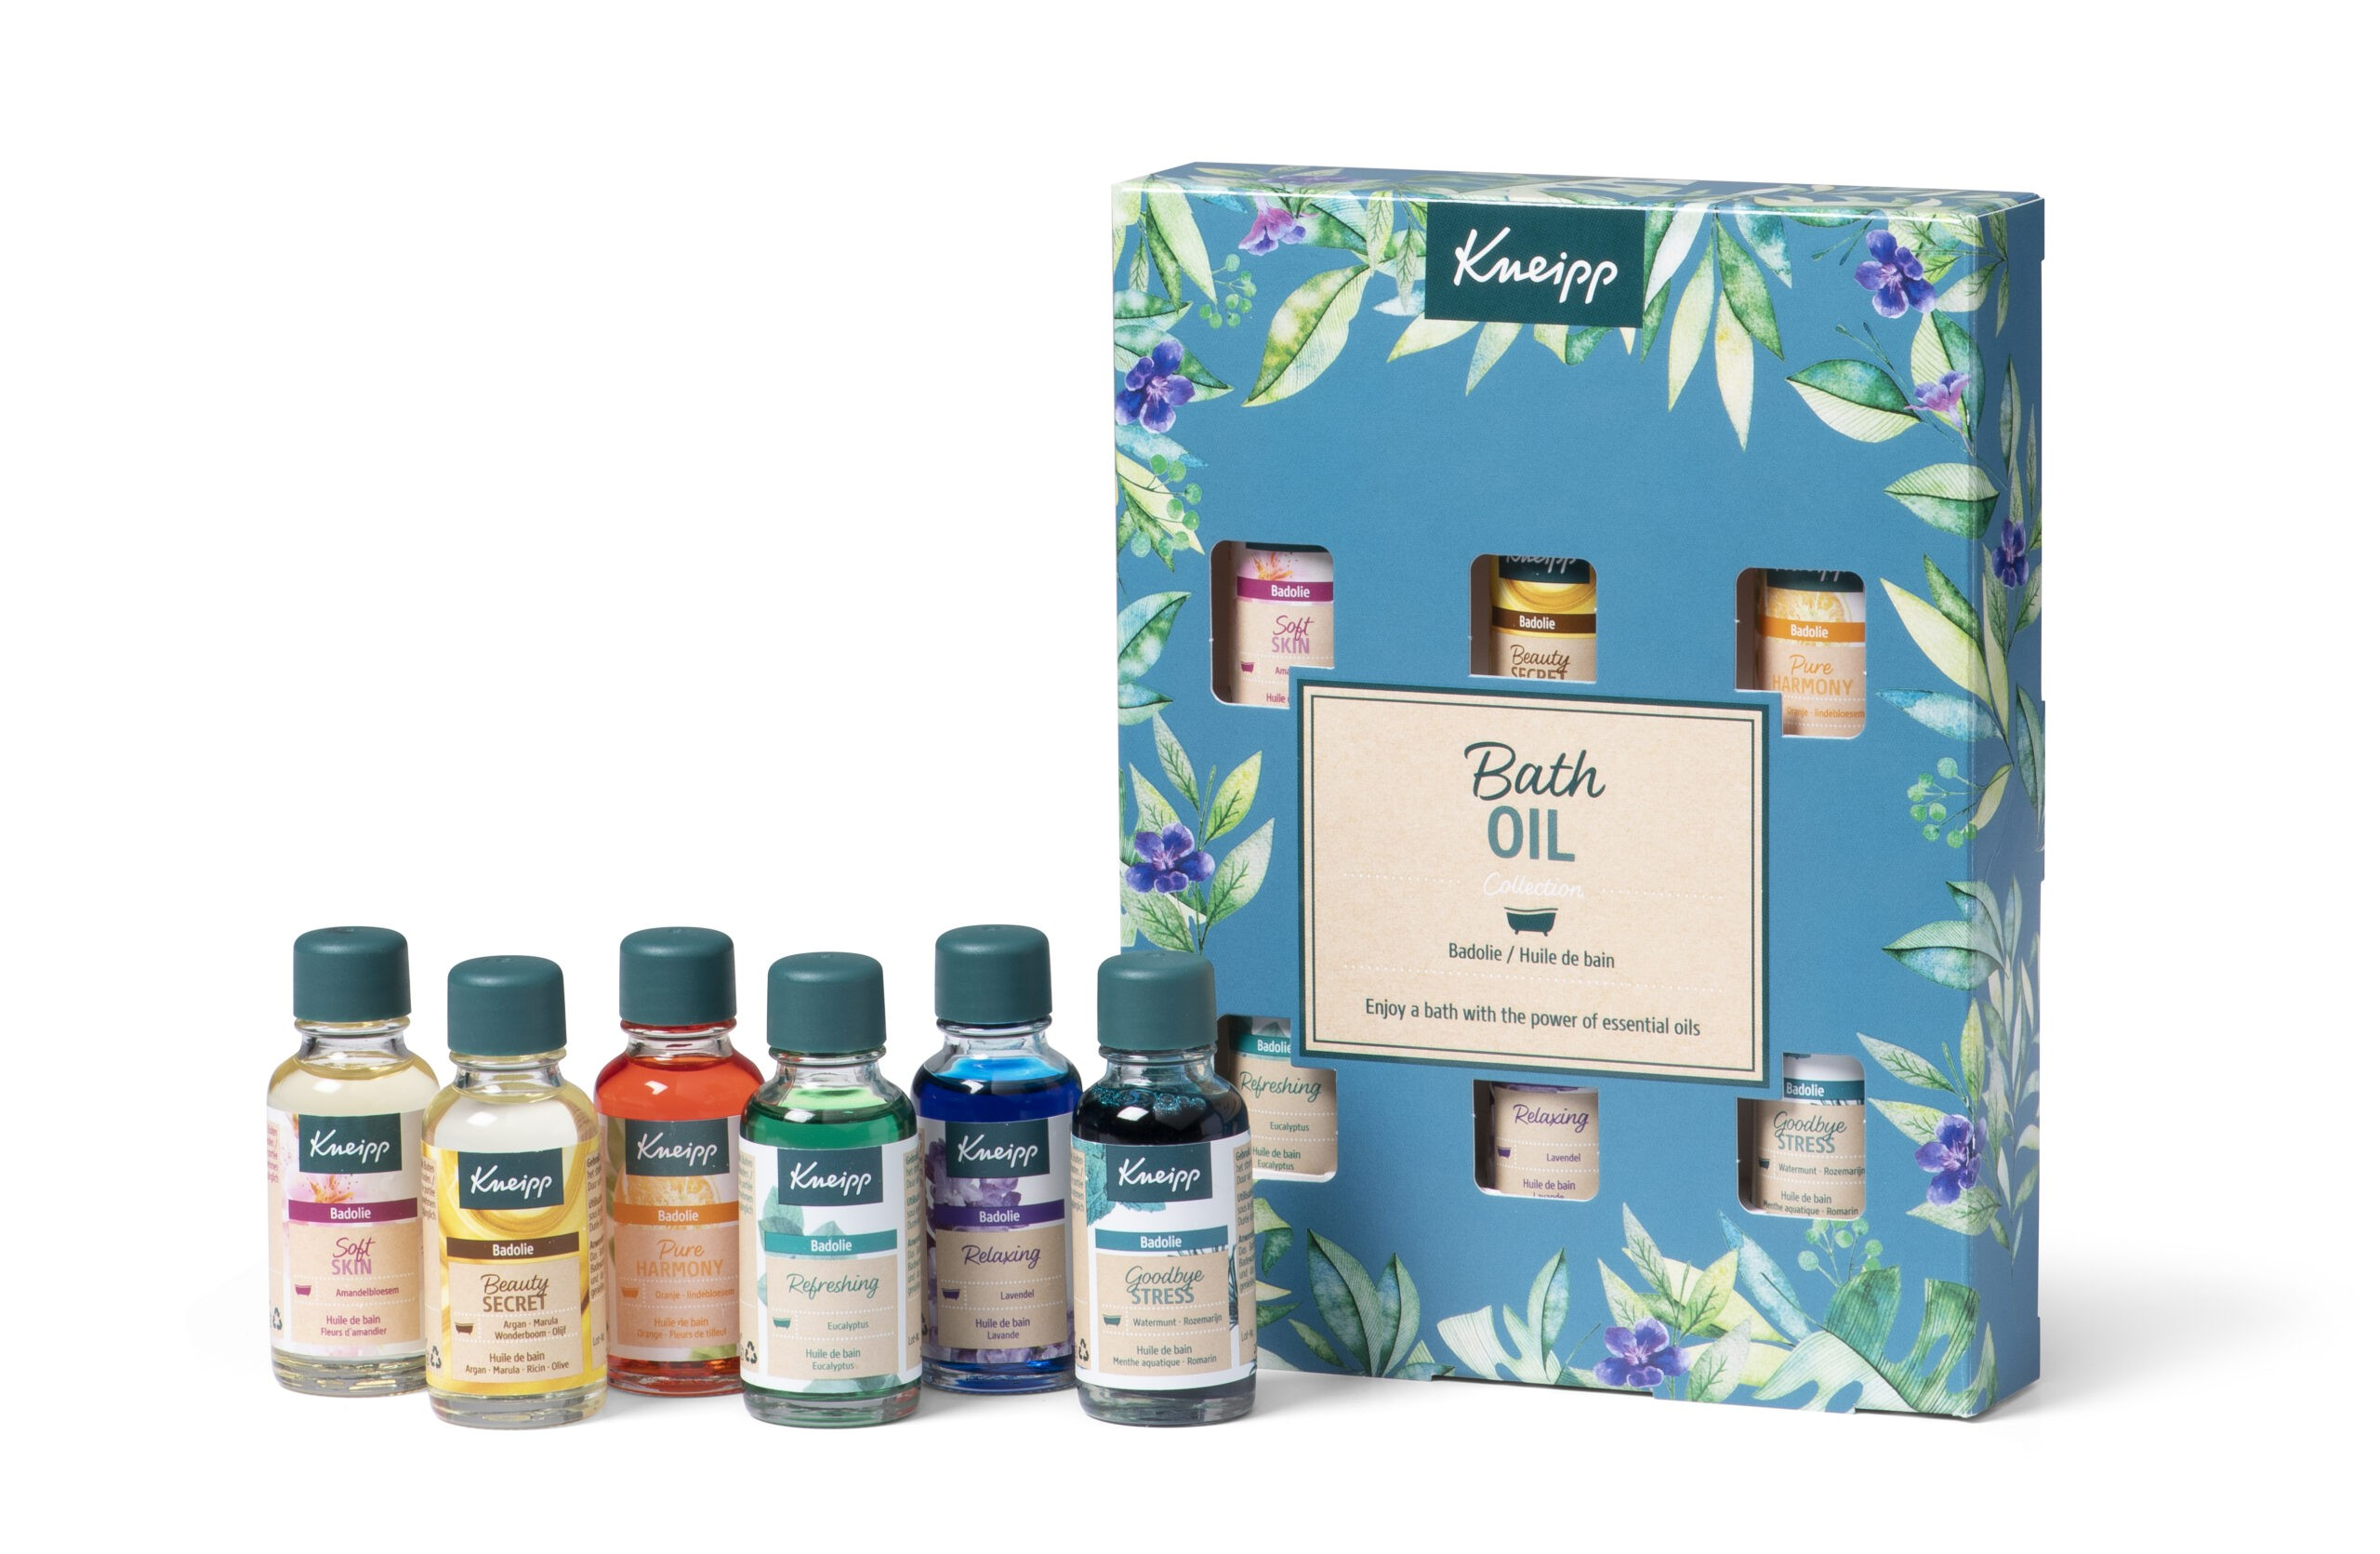 kneipp bath oil collection